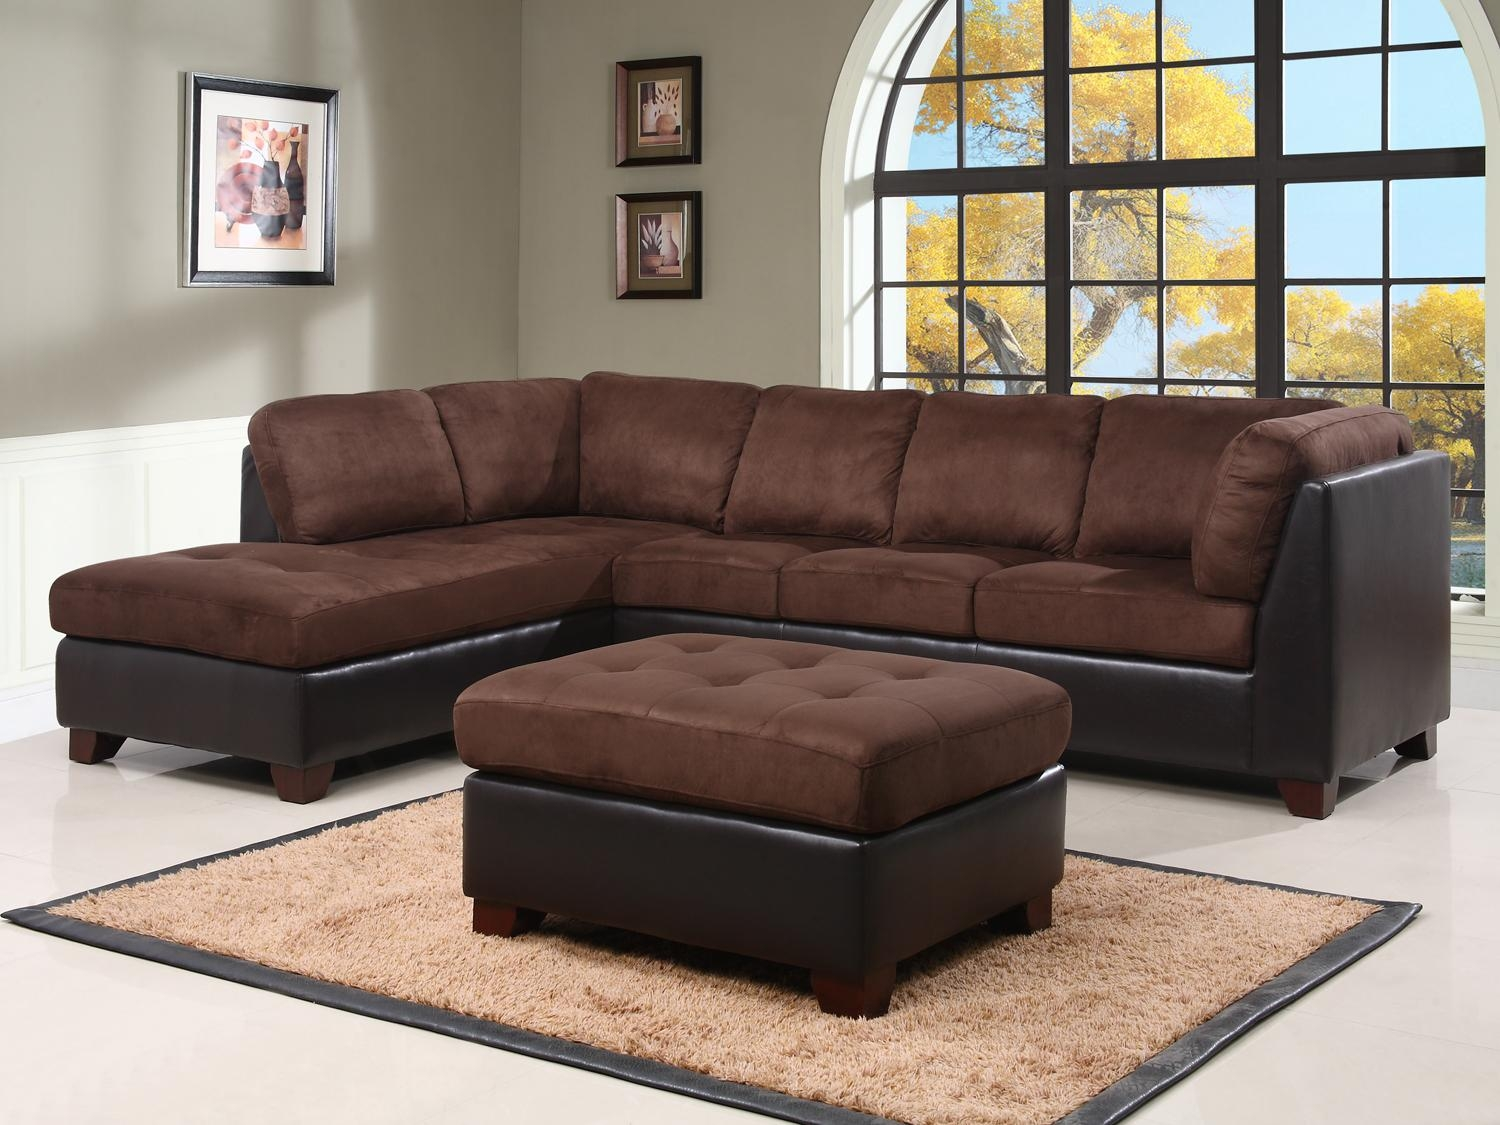 Top Sofa And Ottoman With Image 9 Of 15 Carehouse With Abbyson Living  Charlotte Dark Brown Part 73